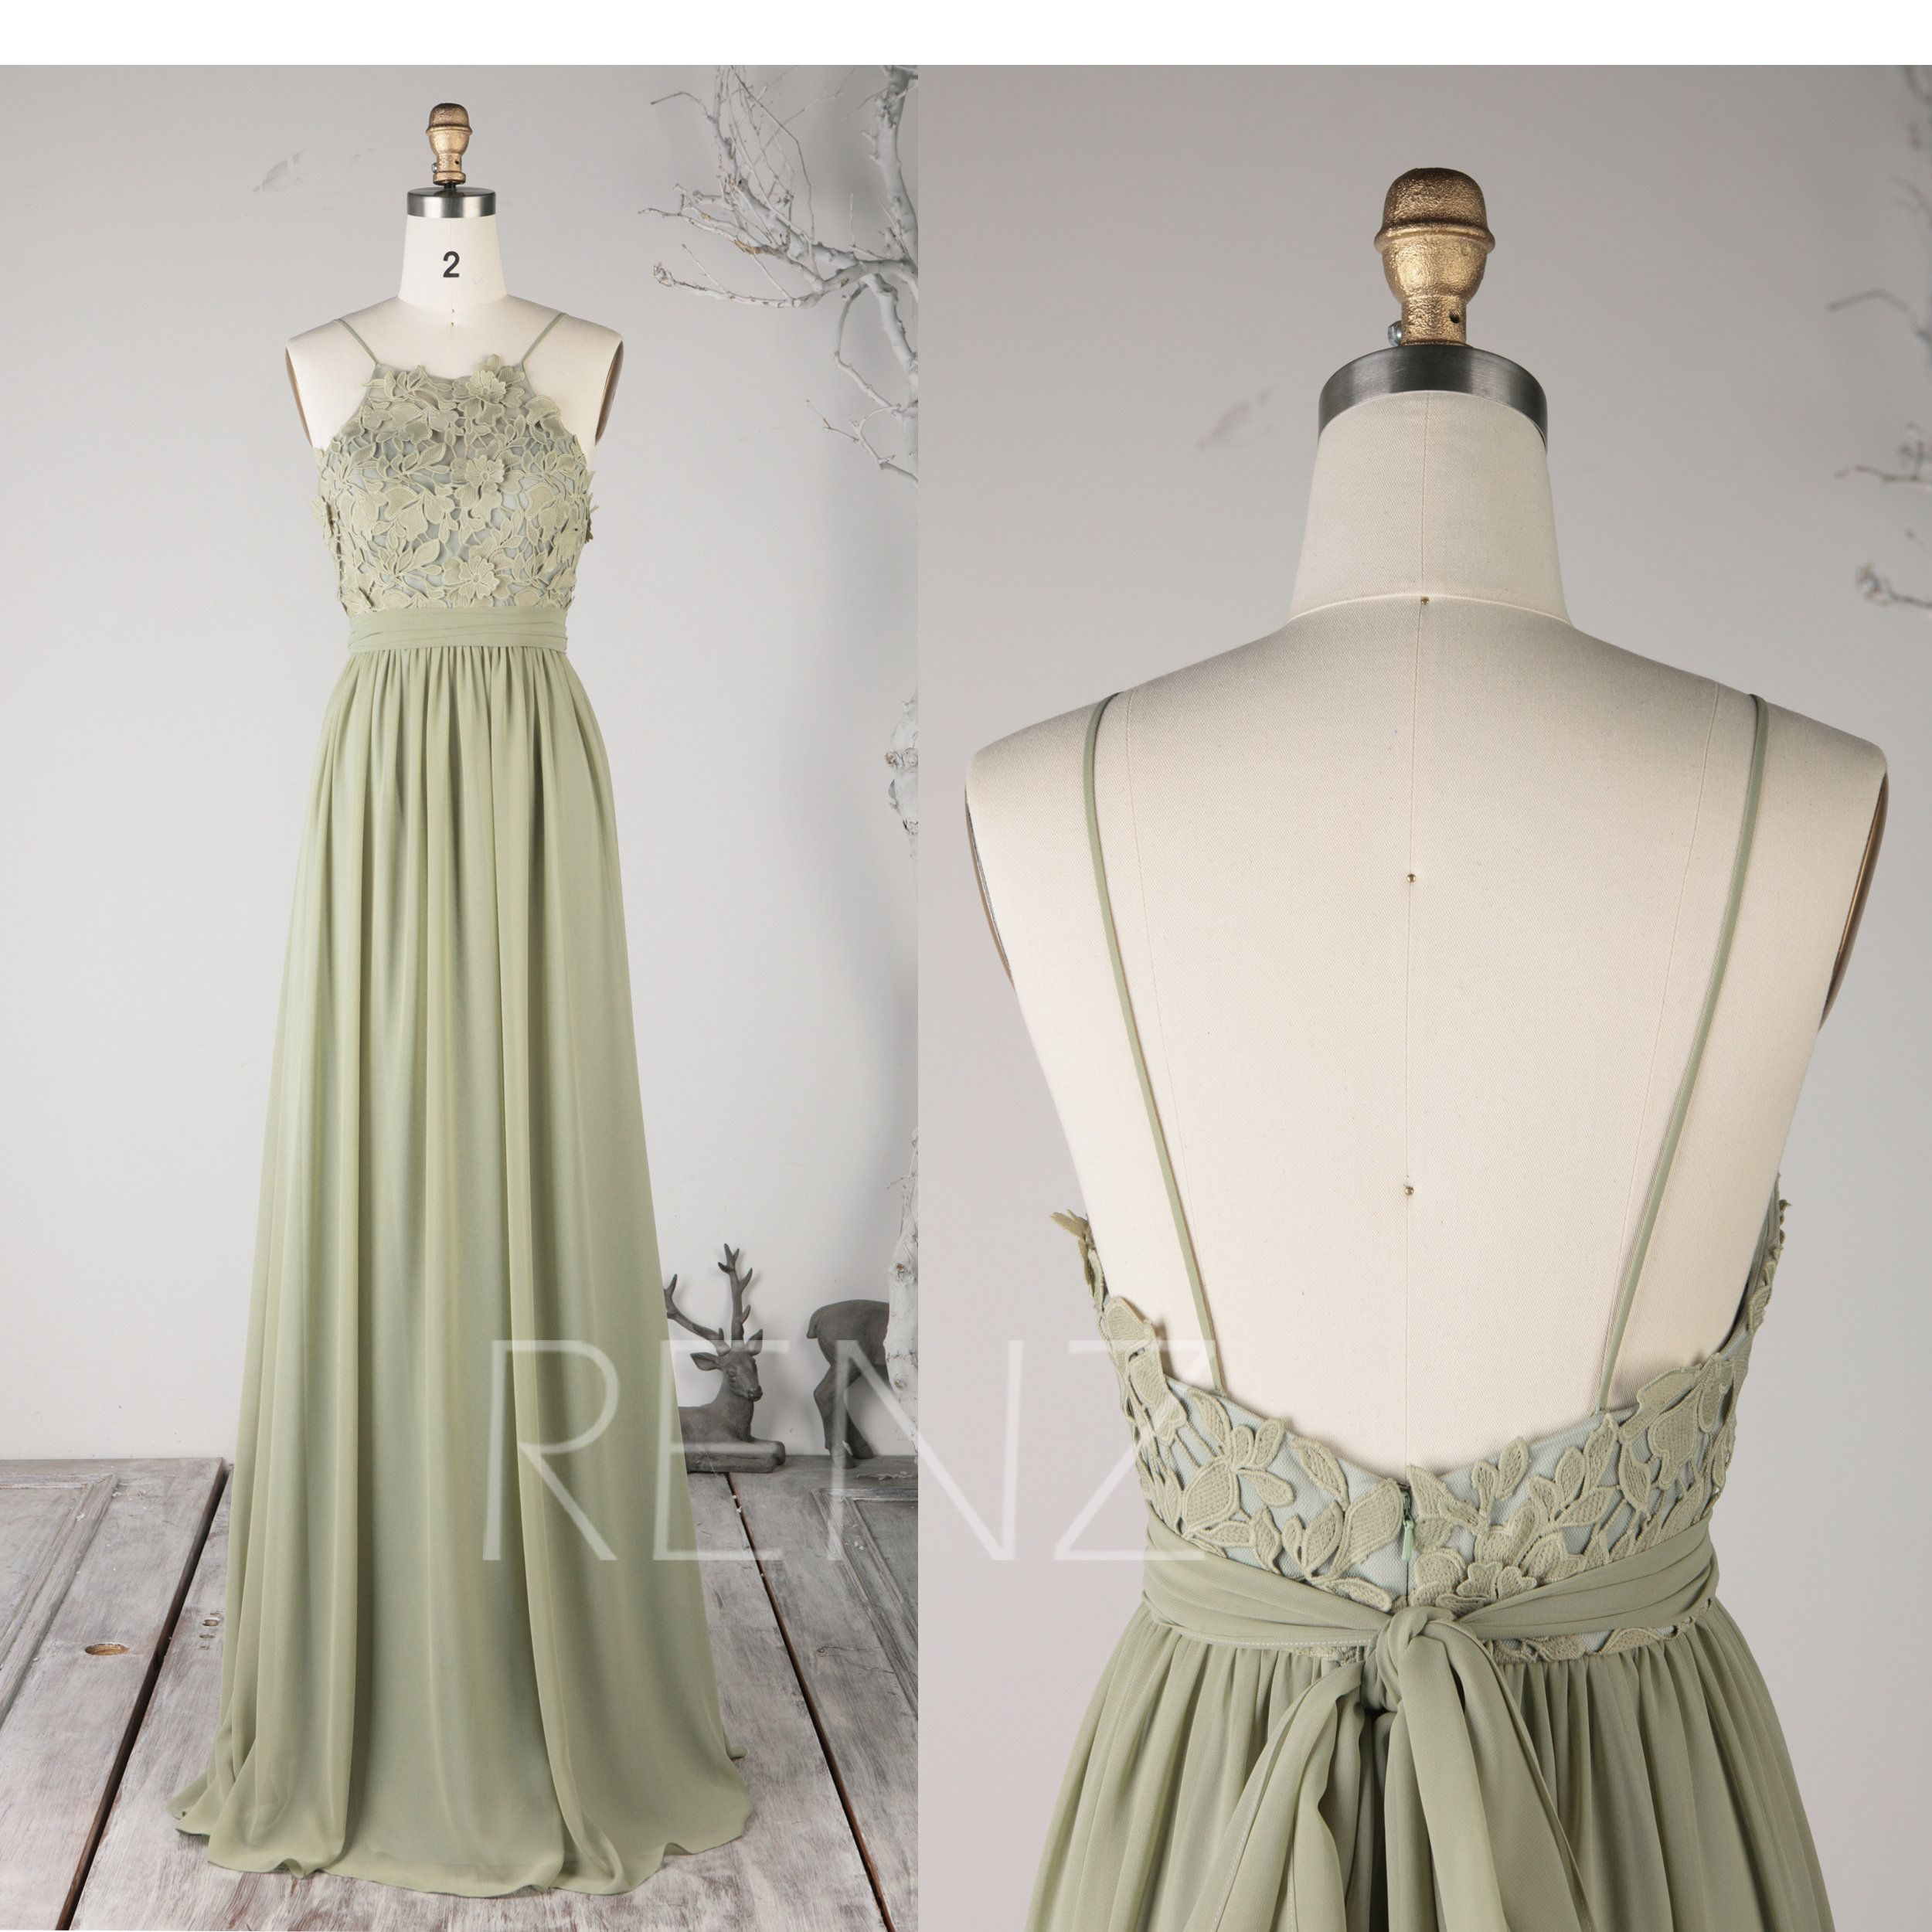 Party Dress Olive Green Bridesmaid Dress Lace Wedding Dress Spaghetti Str Olive Green Bridesmaid Dresses Green Bridesmaid Dresses Lace Green Bridesmaid Dresses